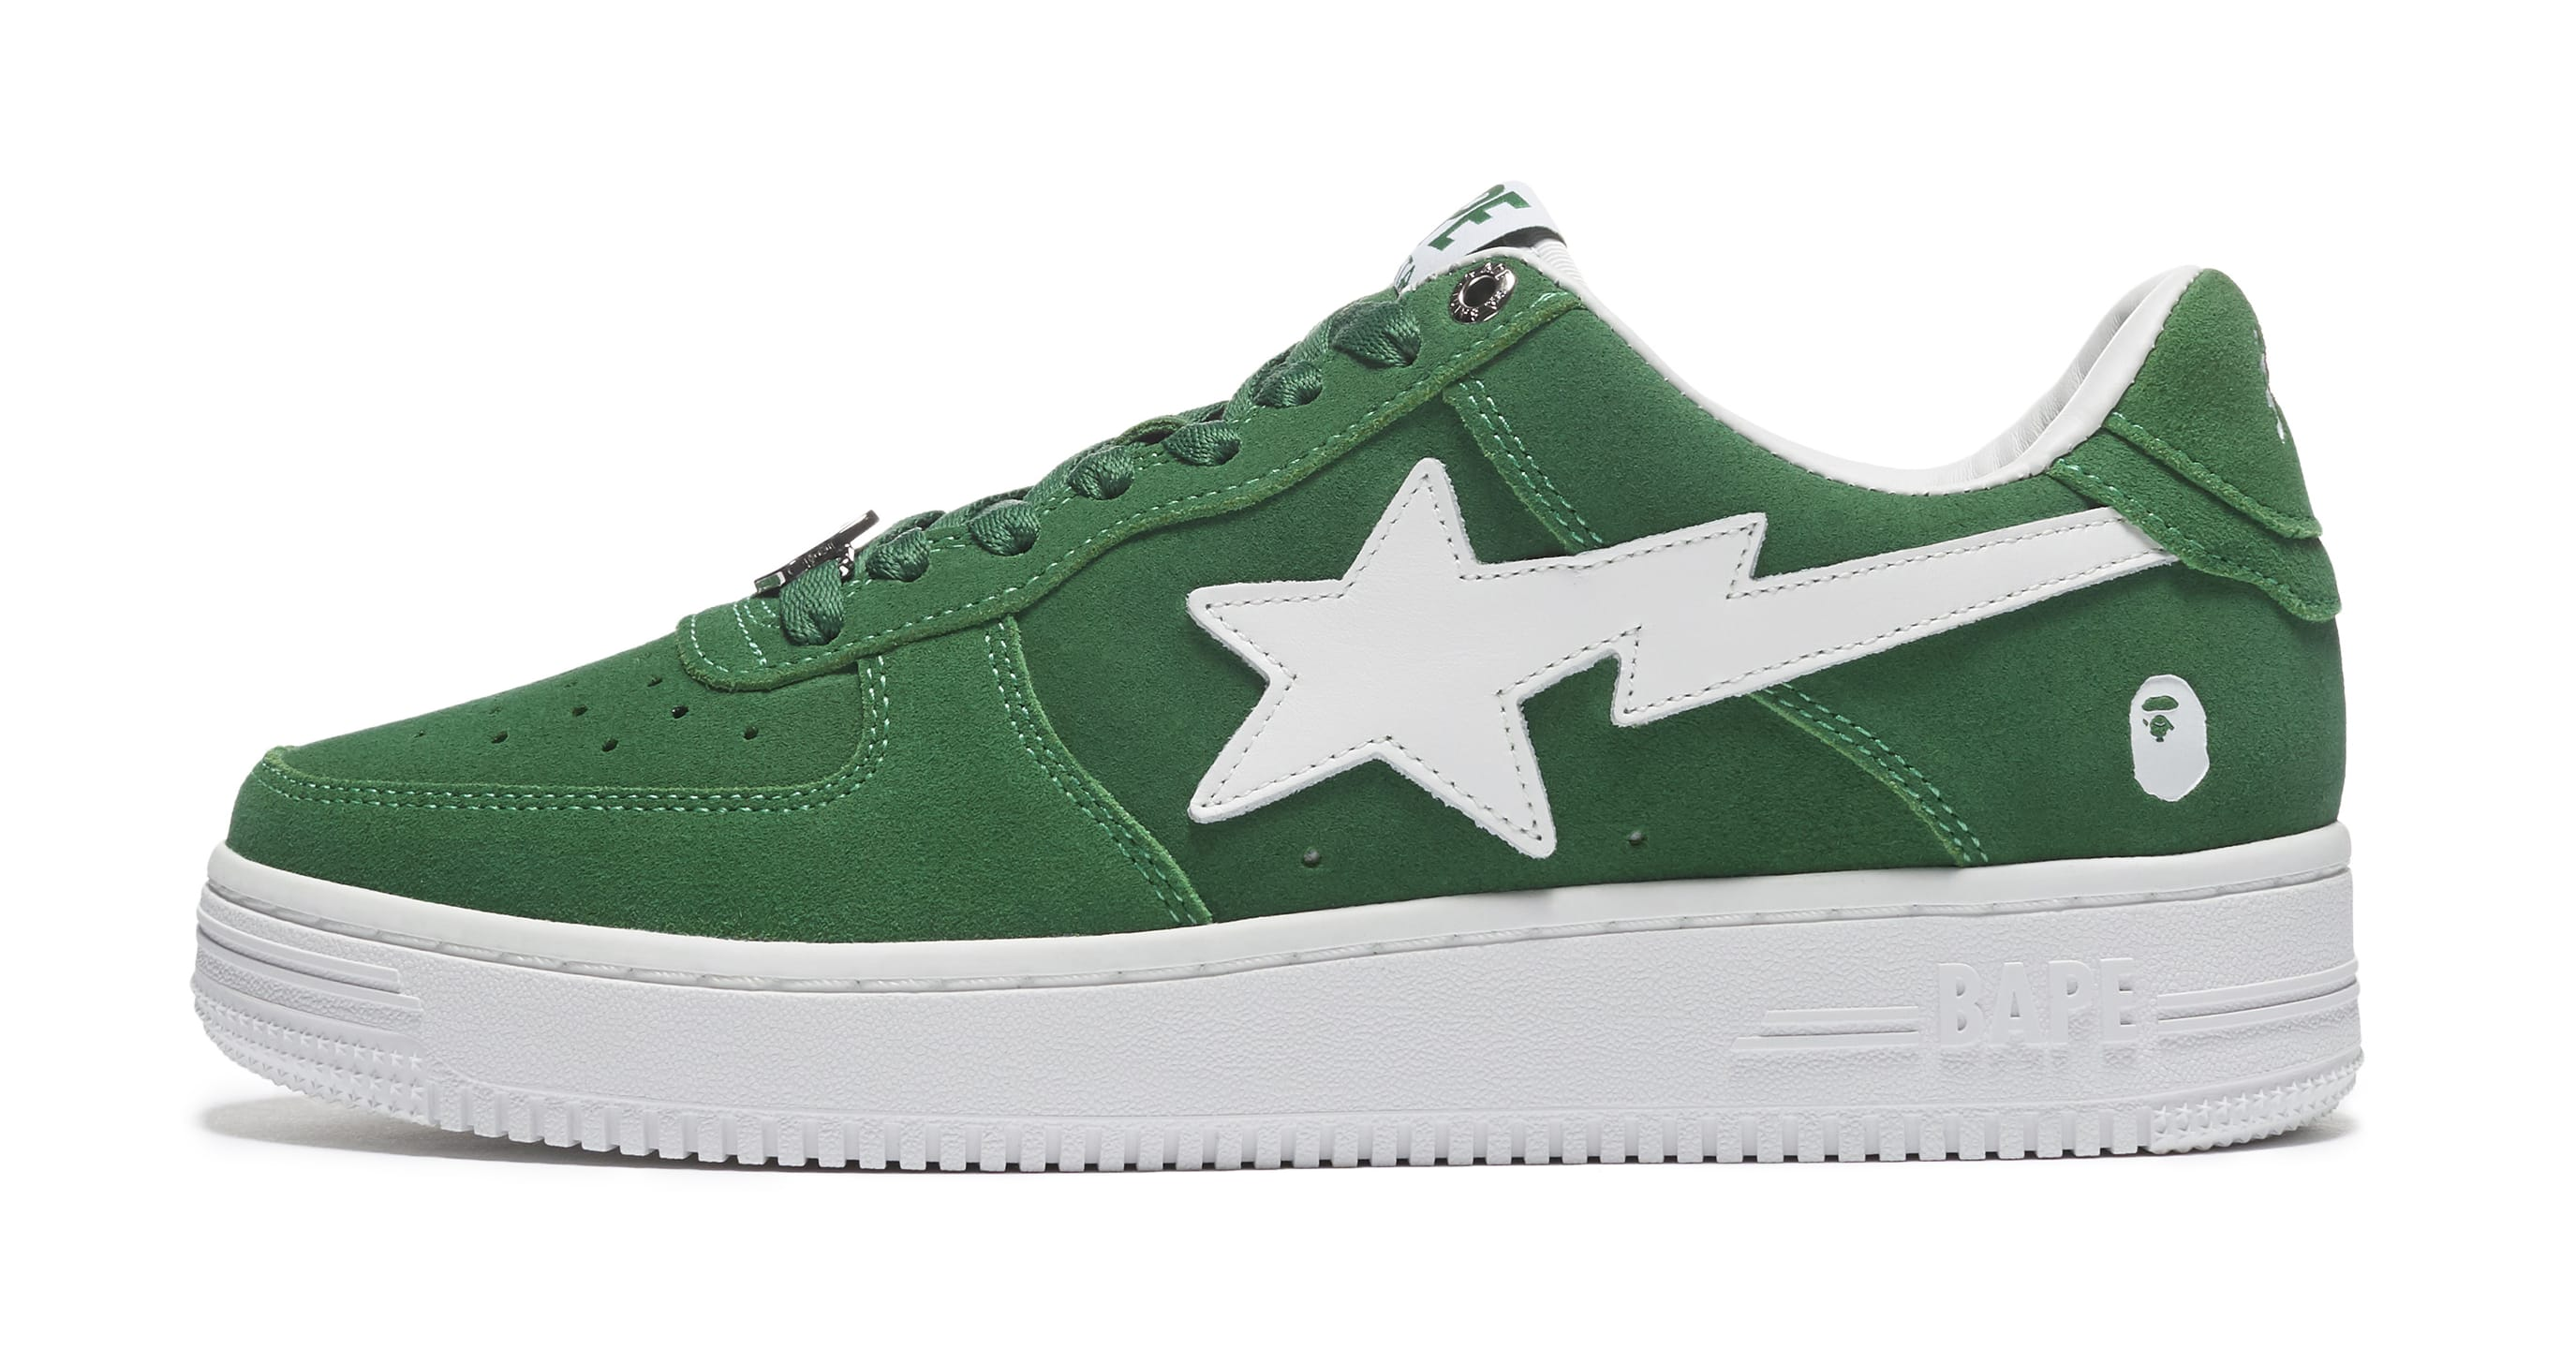 Bape Sta Suede 'Green' Lateral